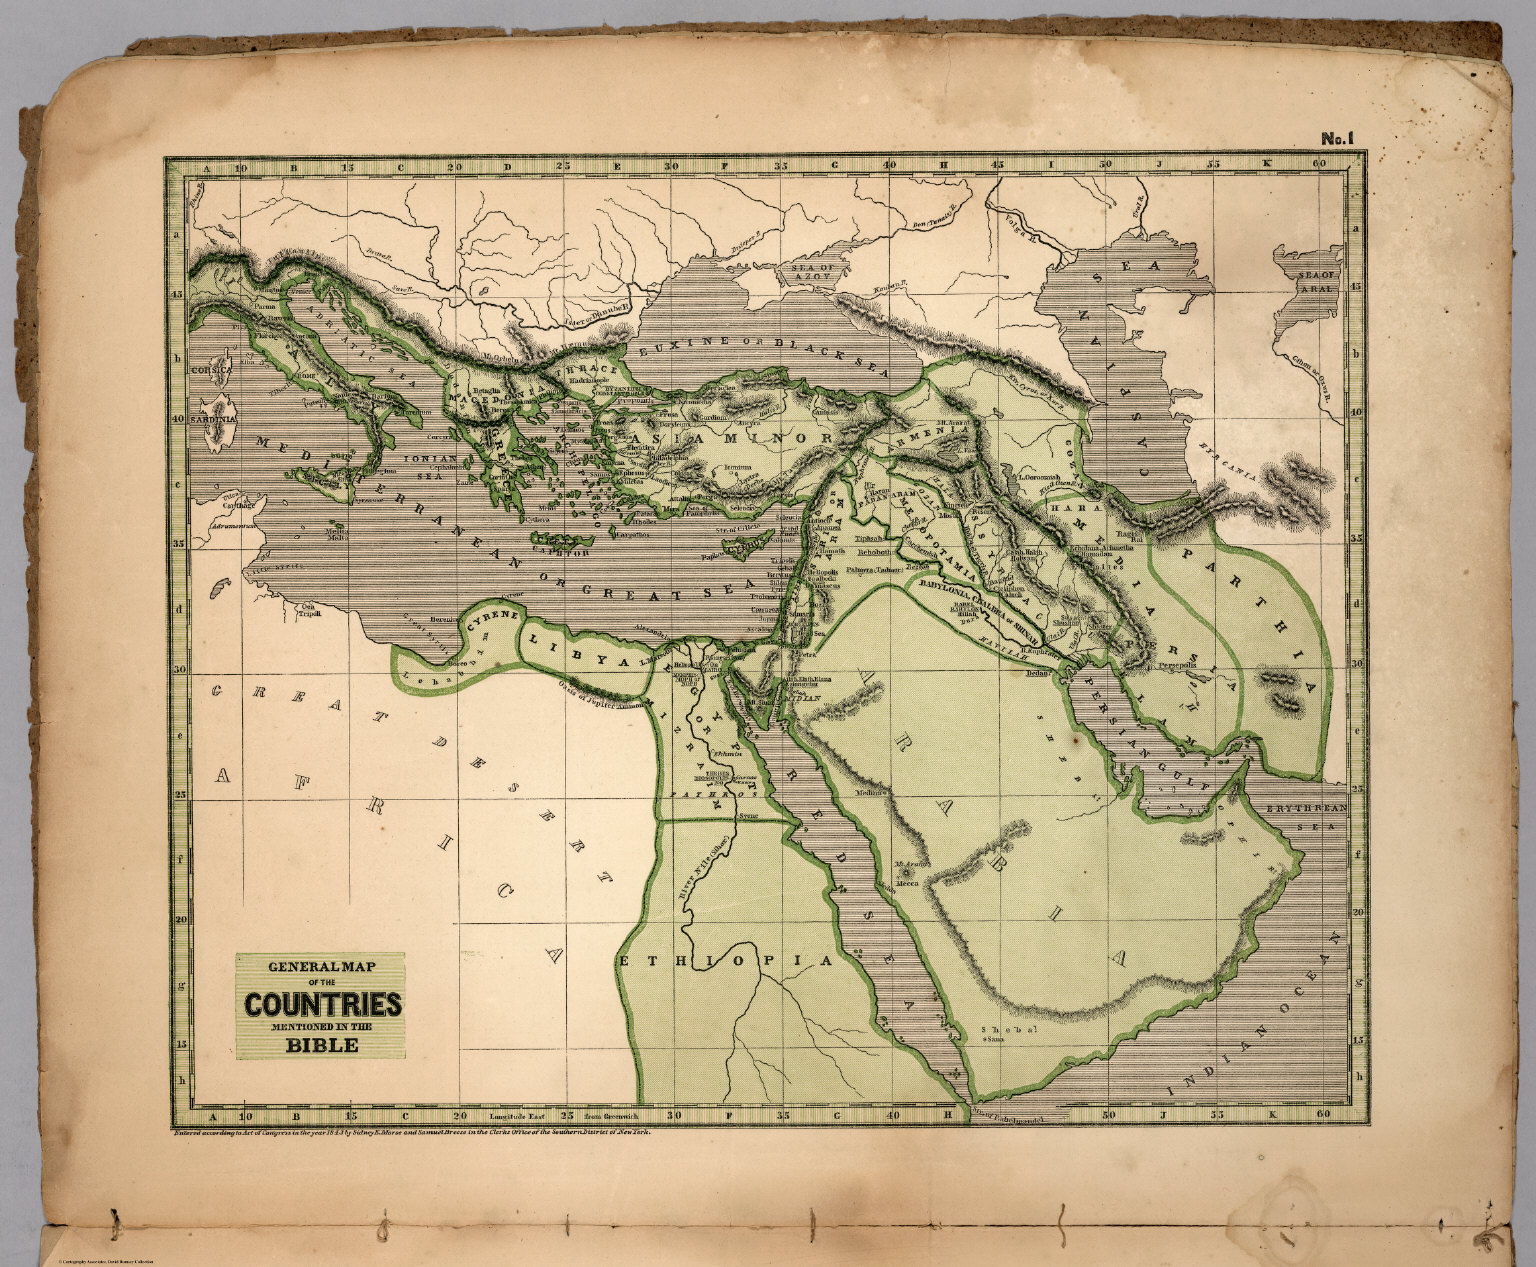 No 1 general map of the countries mentioned in the bible david 1 general map of the countries mentioned in the bible gumiabroncs Image collections